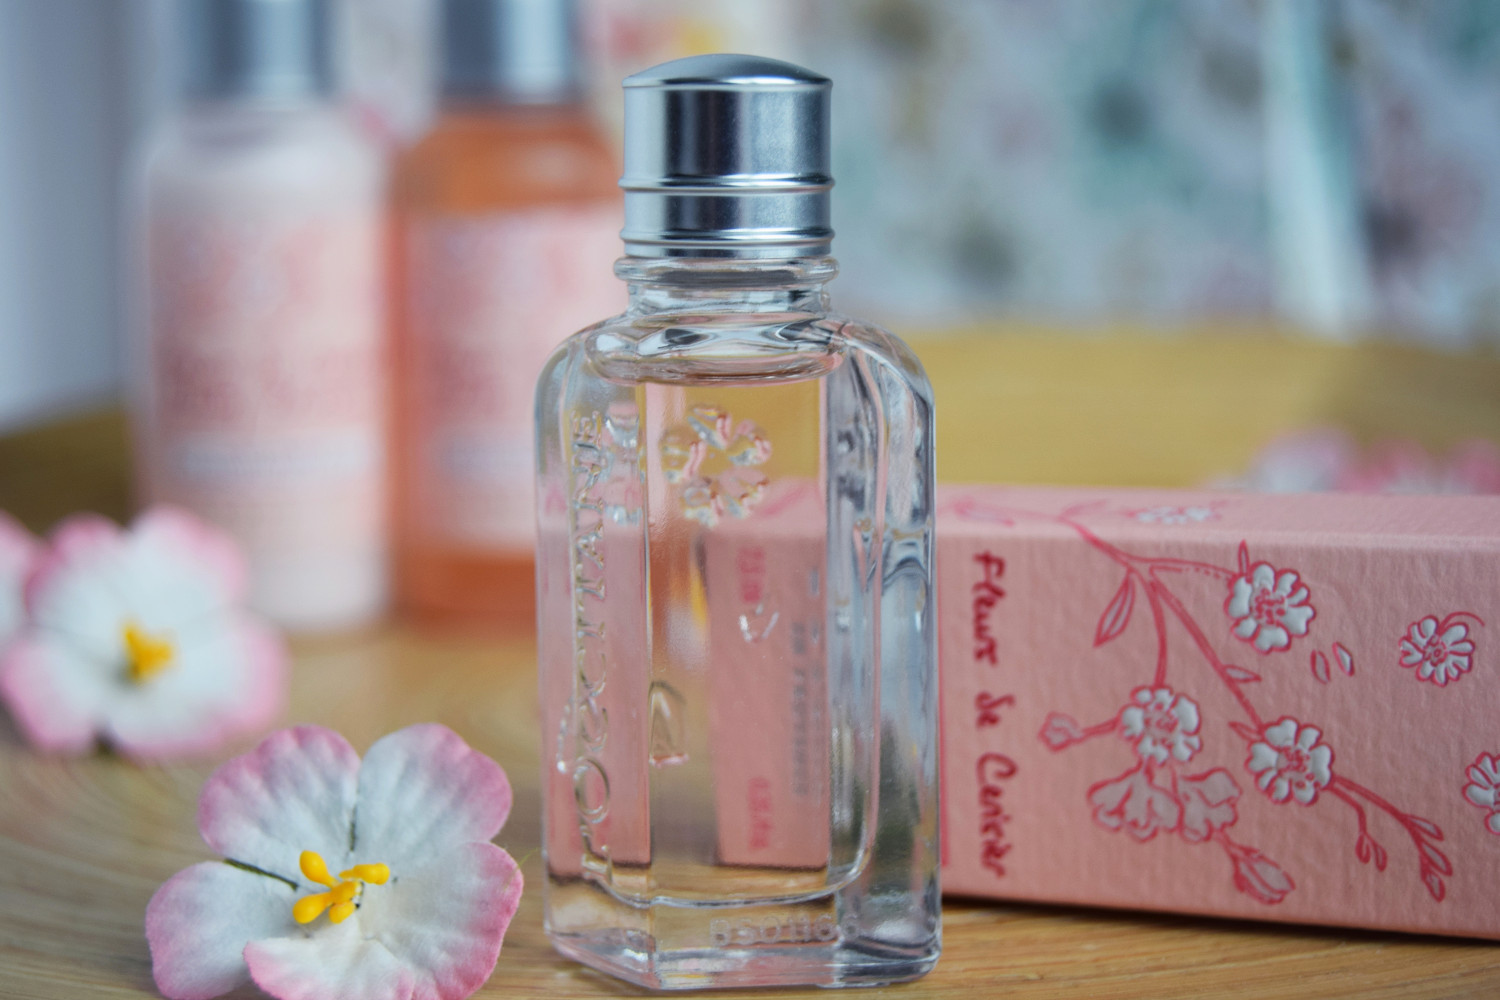 Cherry_blossom_L'Occitane_Zalabell_beauty_4